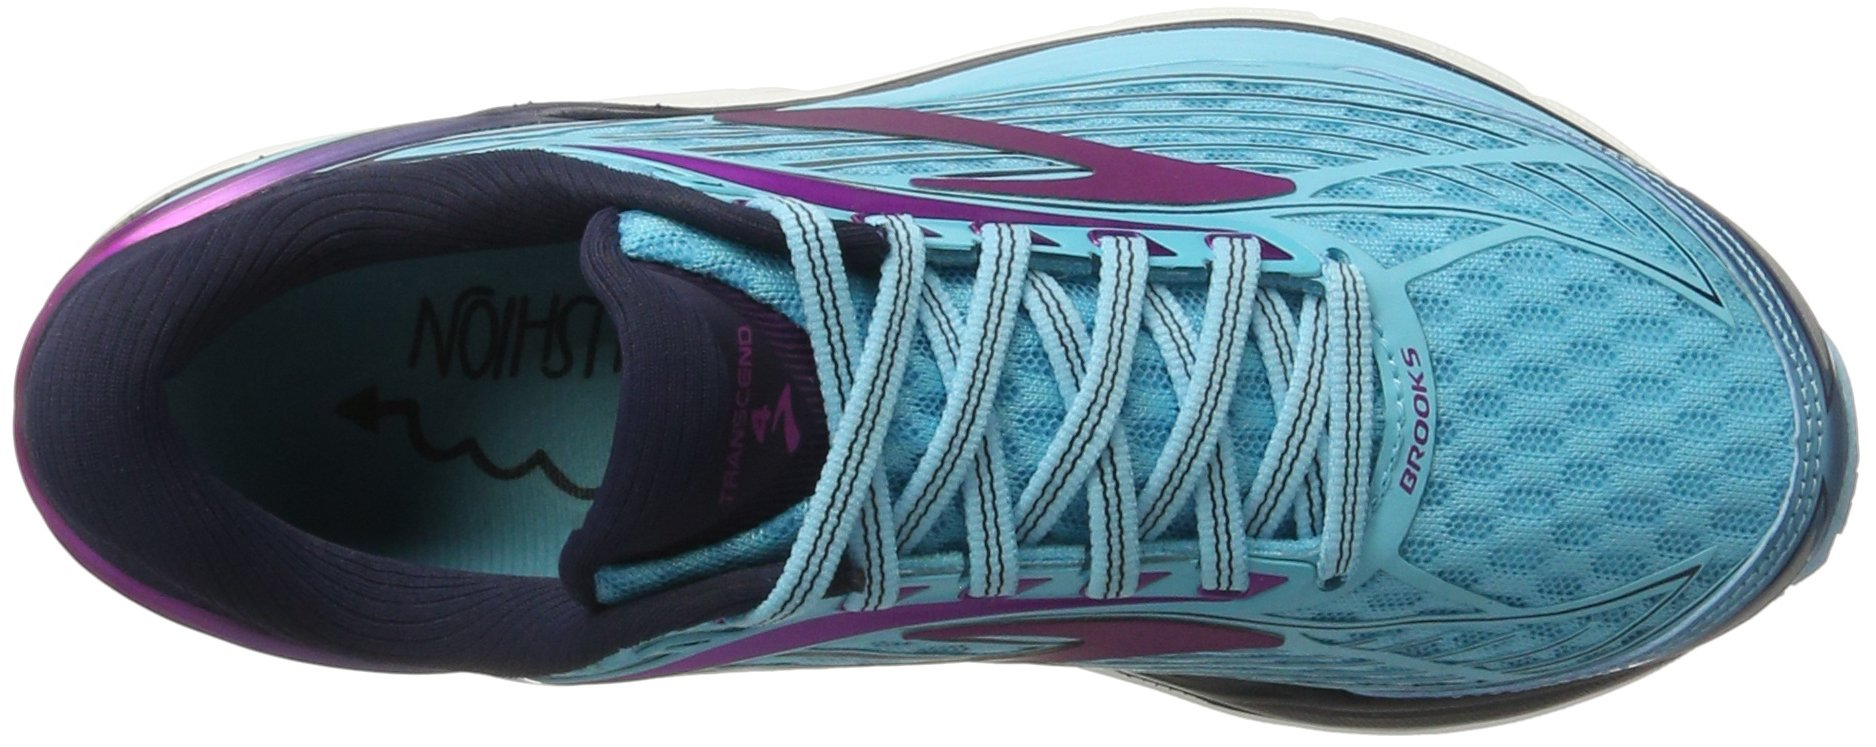 Brooks Women's Transcend 4 Bluefish/Peacoat/Purple Cactus Flower 6.5 B US by Brooks (Image #7)